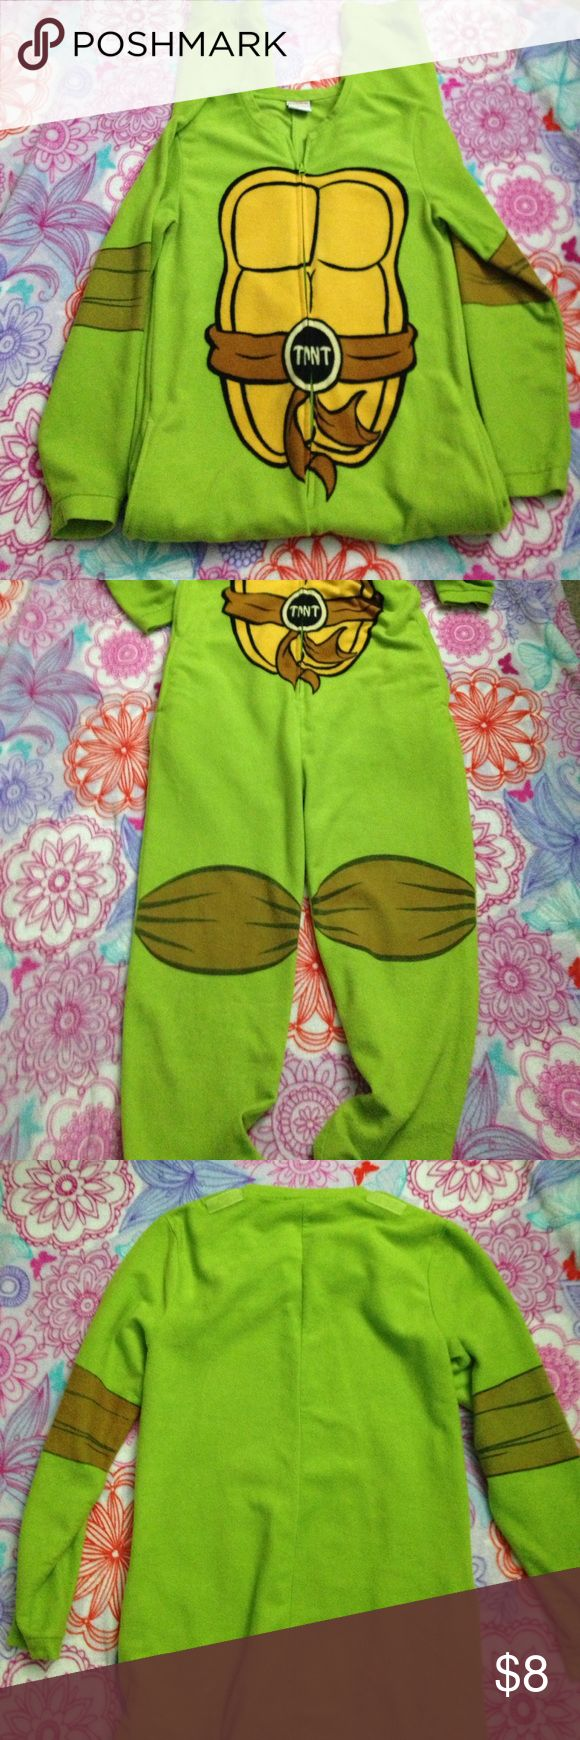 Teenage Mutant Ninja Turtles Onesie 1 Ninja turtle onesie. Zips up the front. There is velcro on the back at the shoulder but I don't have the cape that attaches. The graphic on the knees and elbows is faded. The center graphic is perfect. Would be great for Halloween. Other